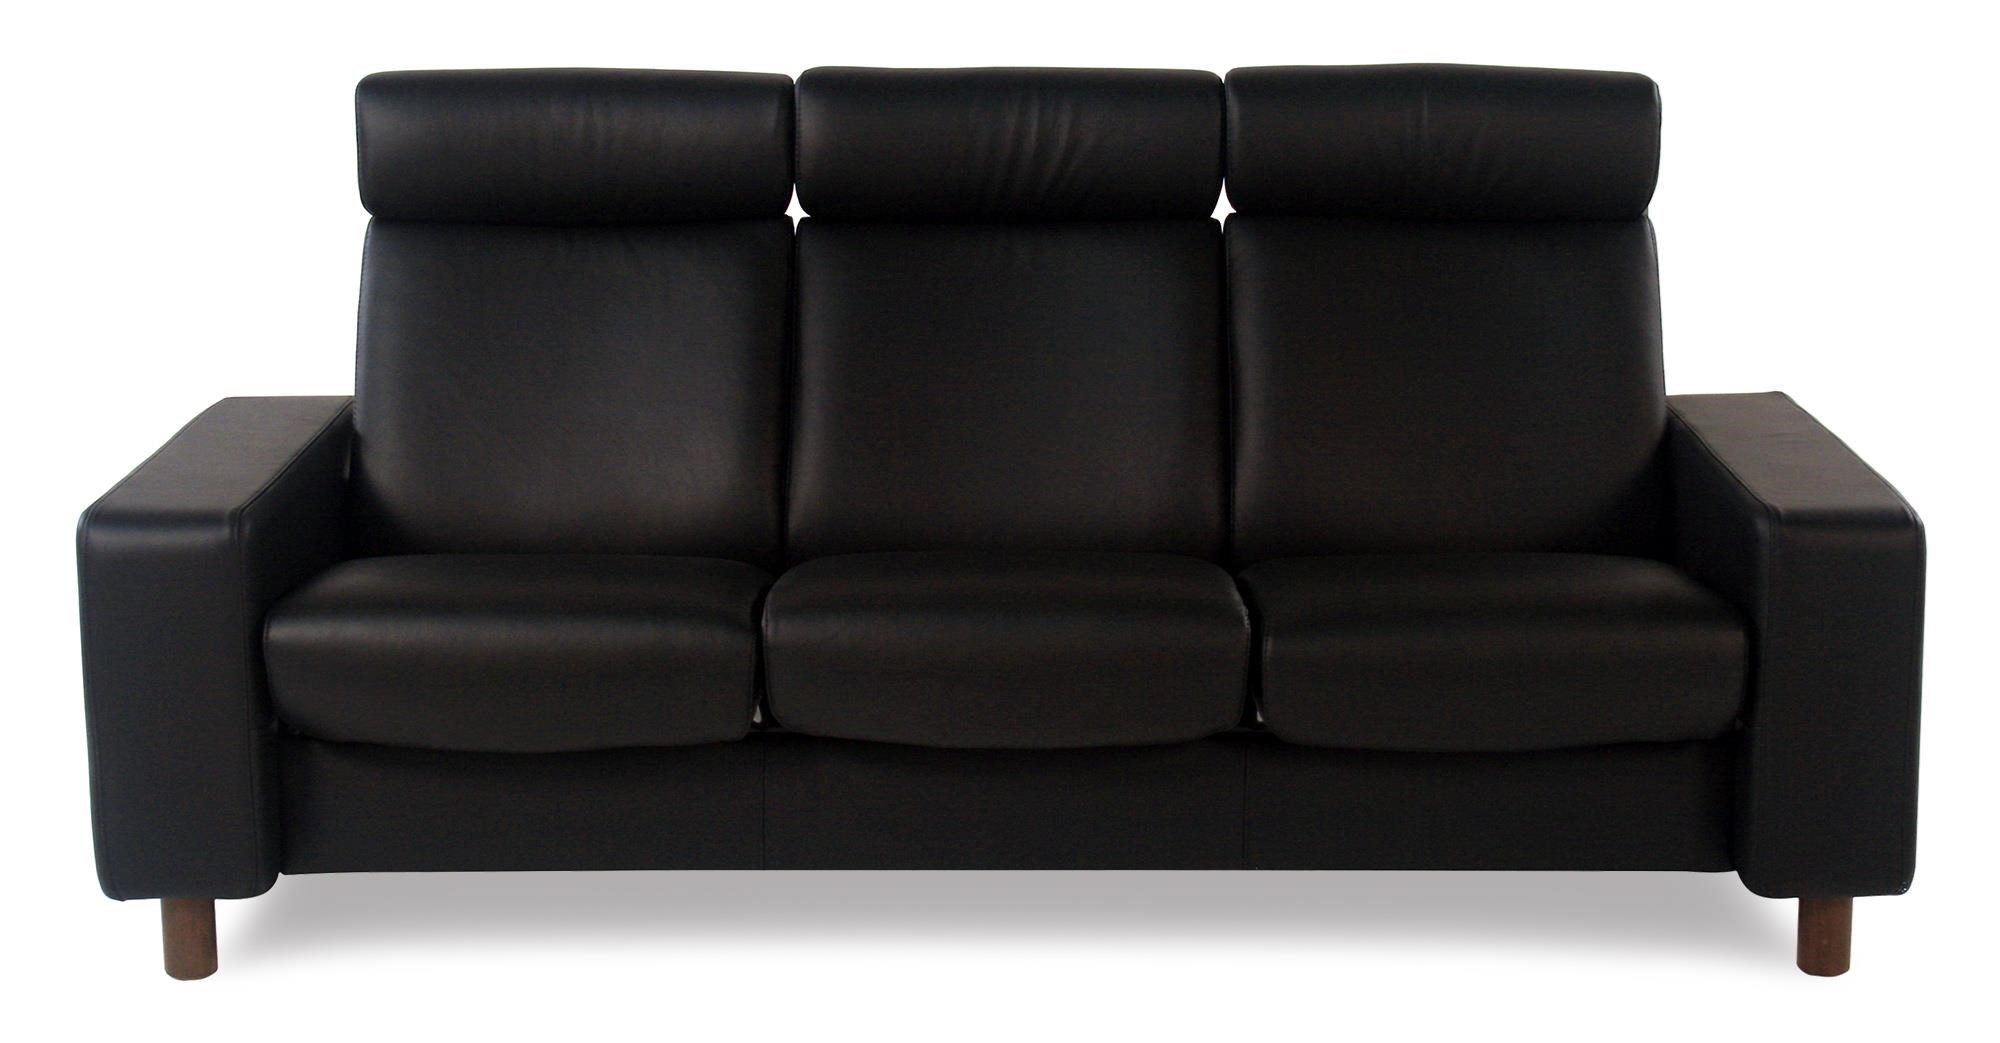 Stressless By Ekornes Stressless Pause3 Seat High Back Sofa ...